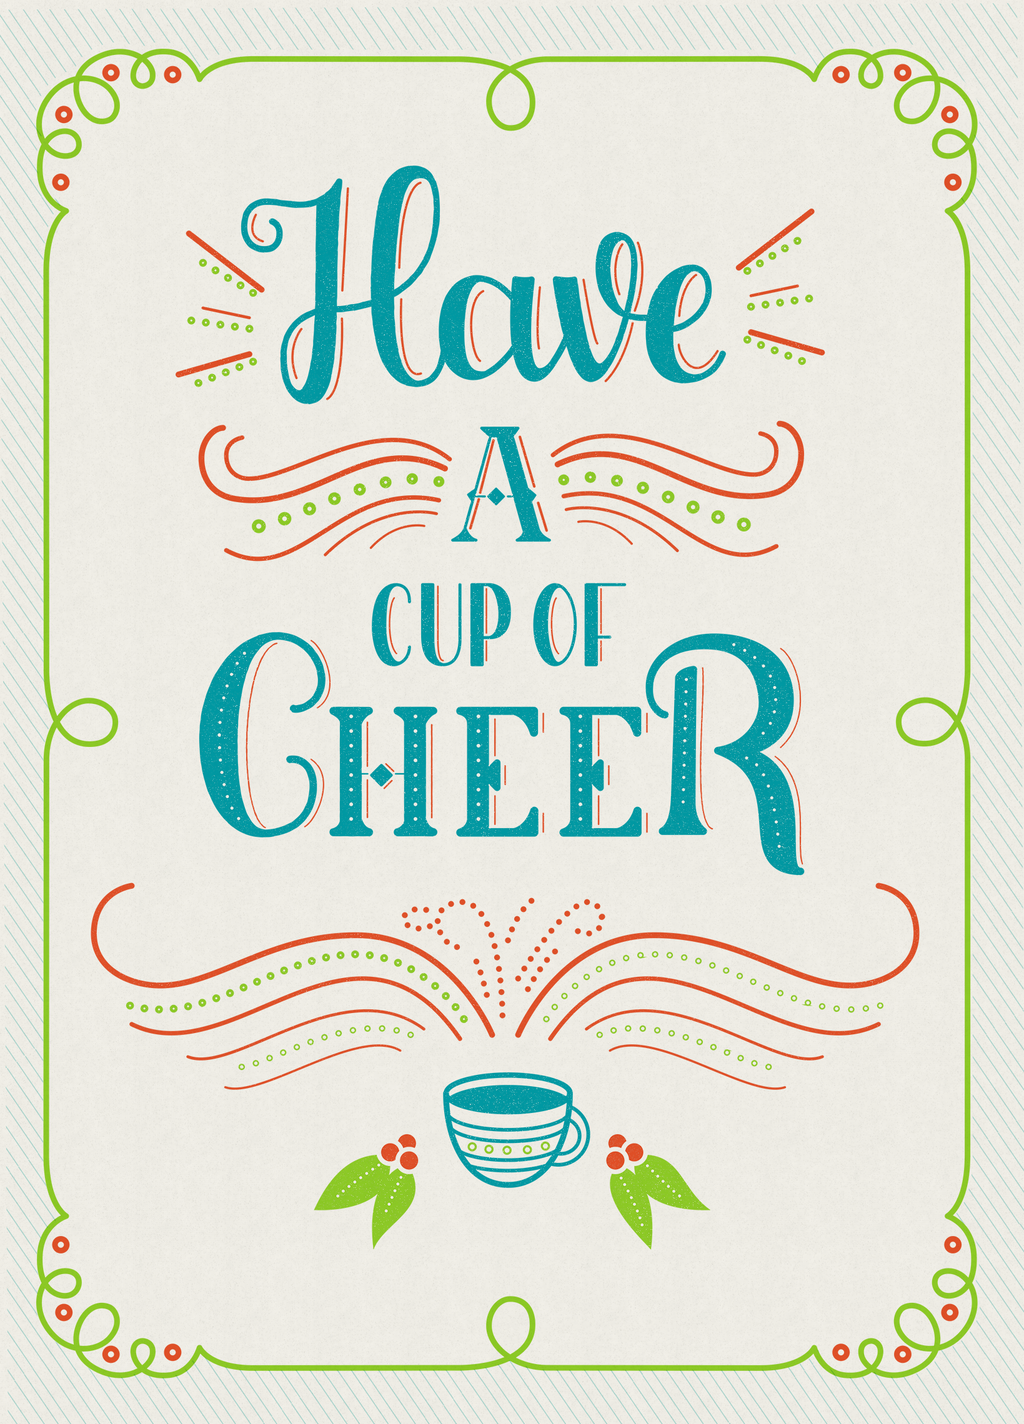 Have a Cup of Cheer by on